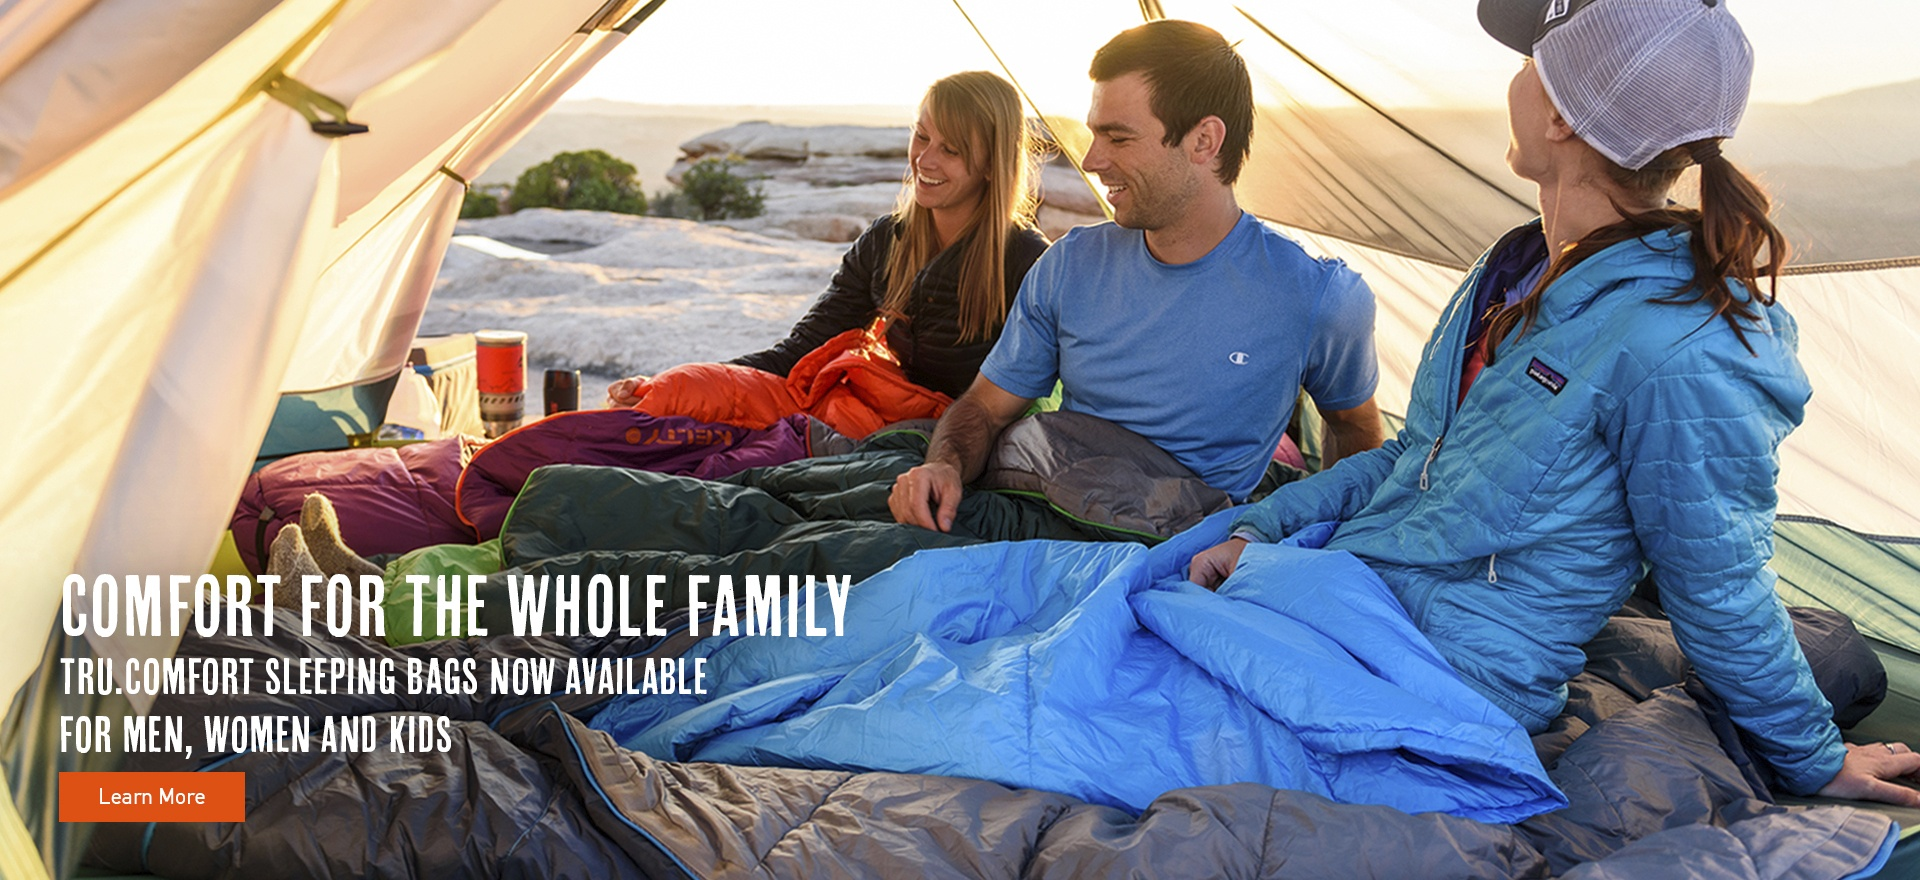 New Tru.Comfort Sleeping Bags Now Available for Men, Women and Kids